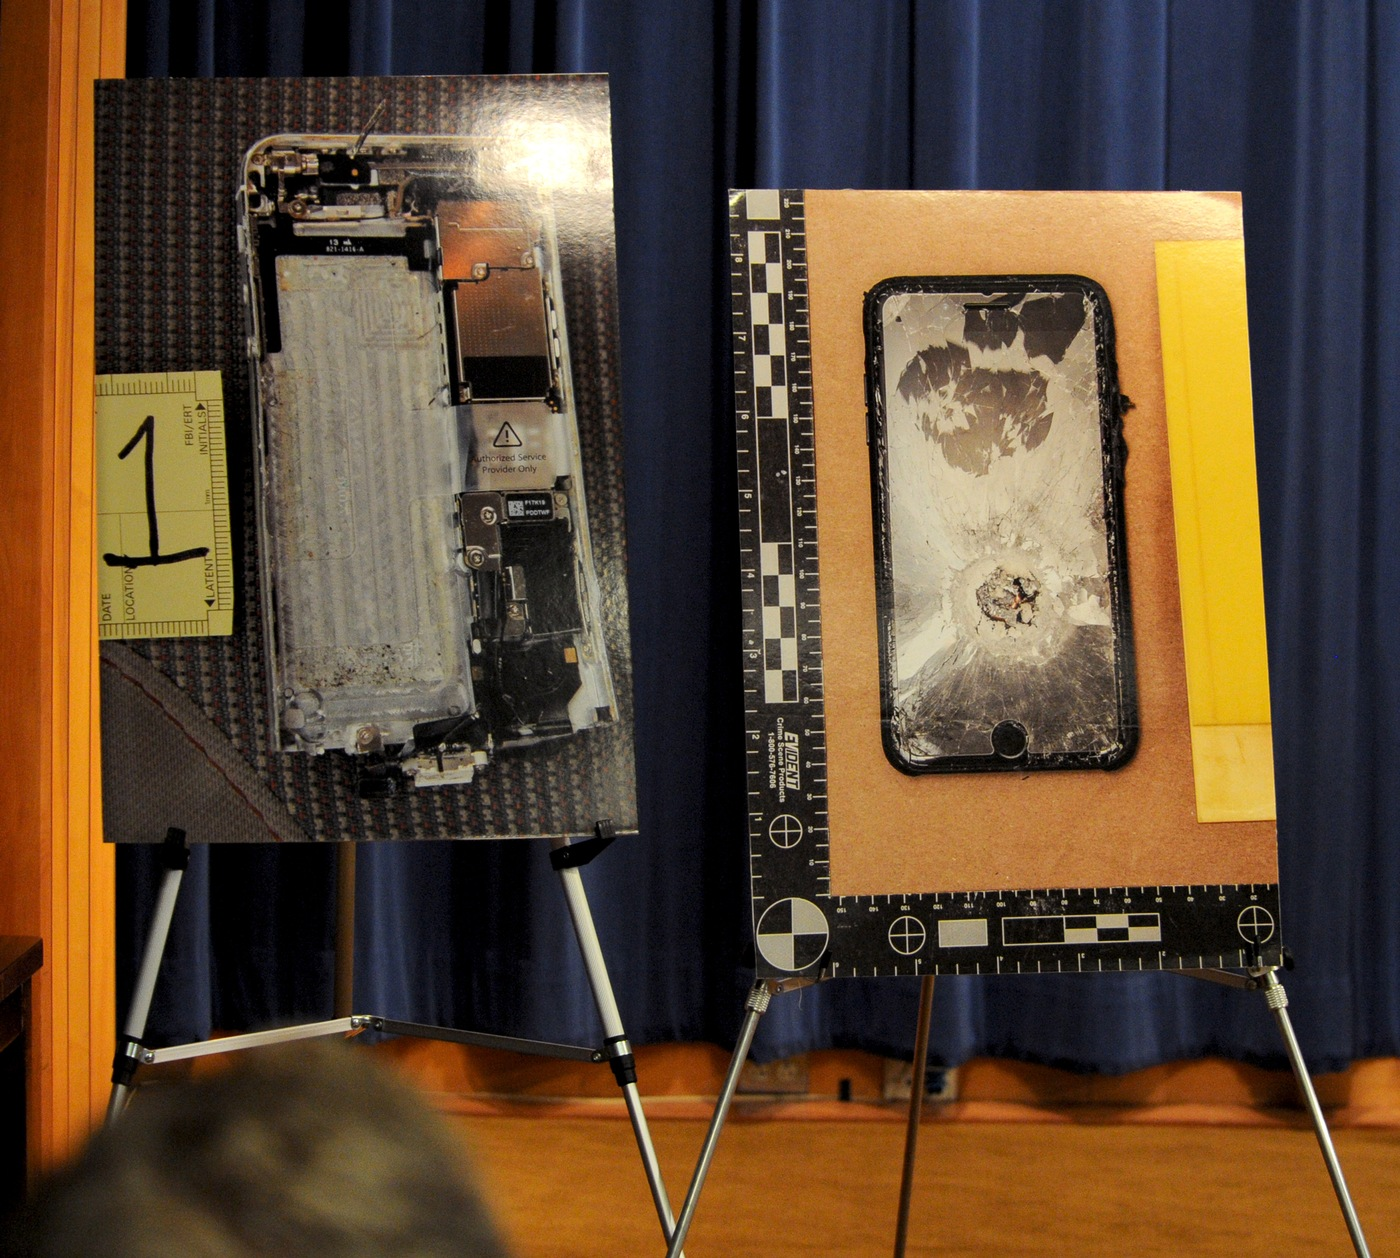 Images of the Pensacola shooter's phone were on display during a January 13, 2020, press conference at DOJ Headquarters in Washington, D.C.